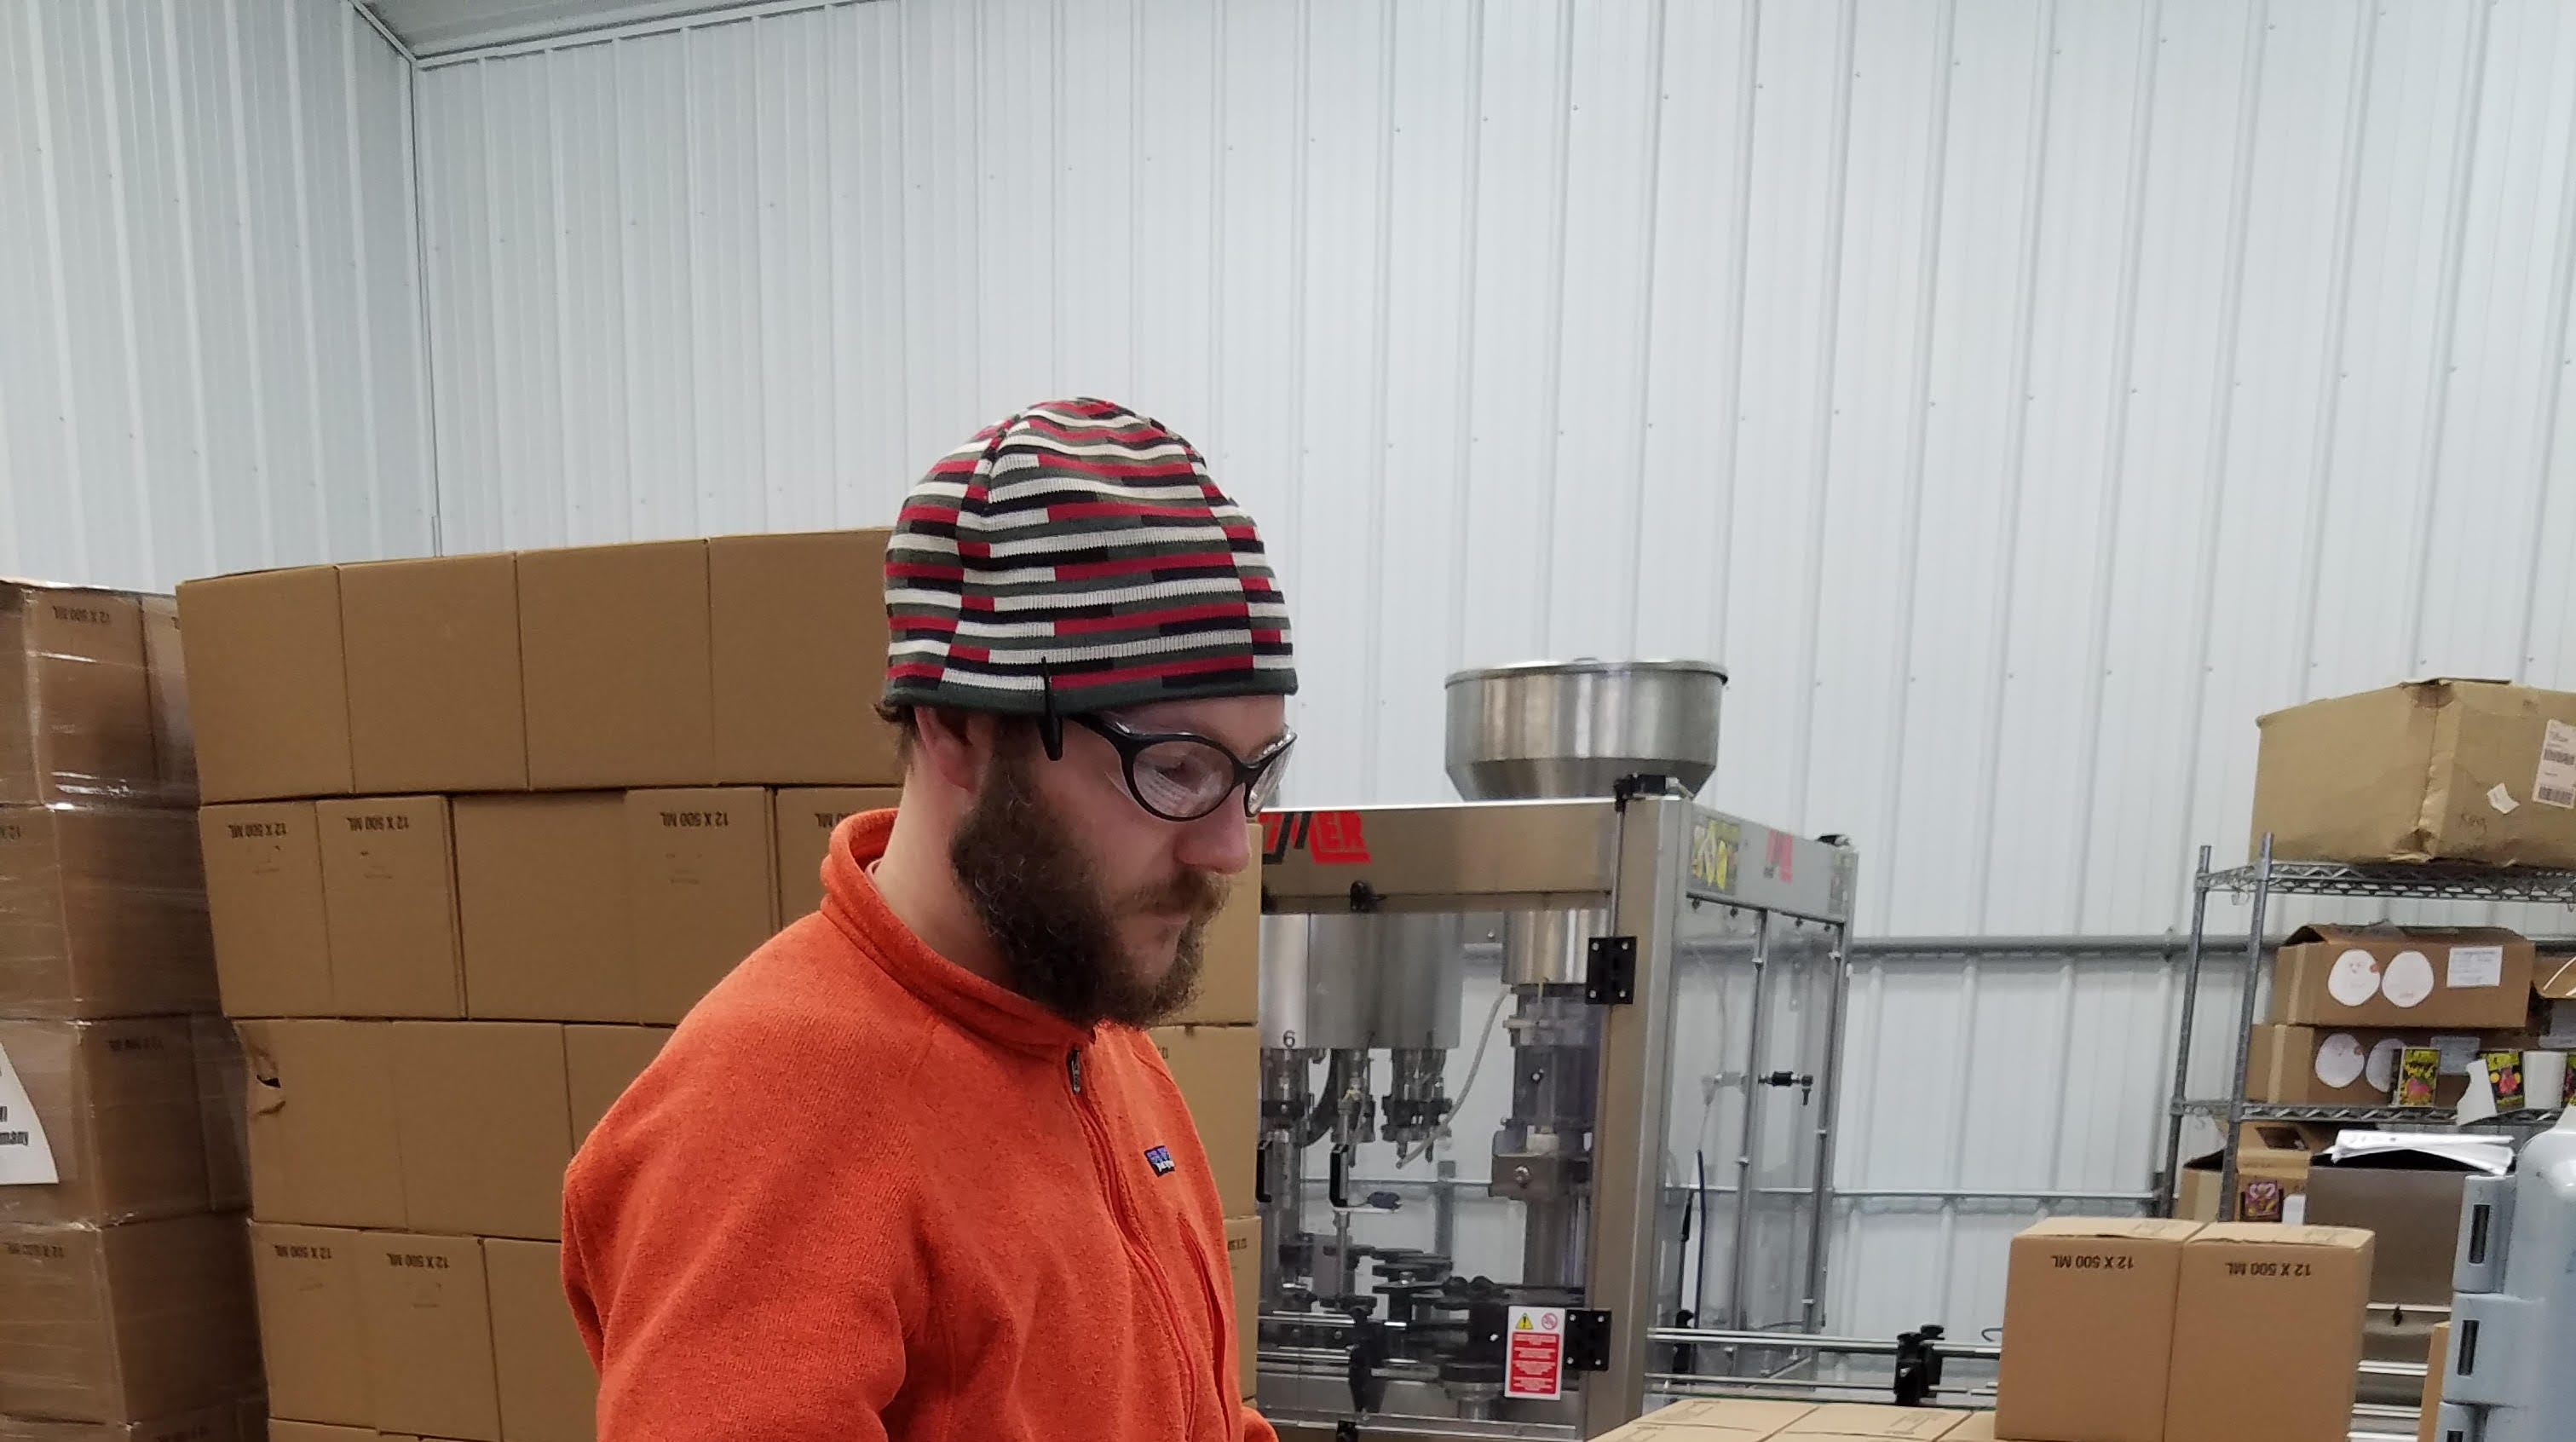 Nathan Ely was one of the first graduates of an innovative new winemaking apprenticeship program in Michigan.